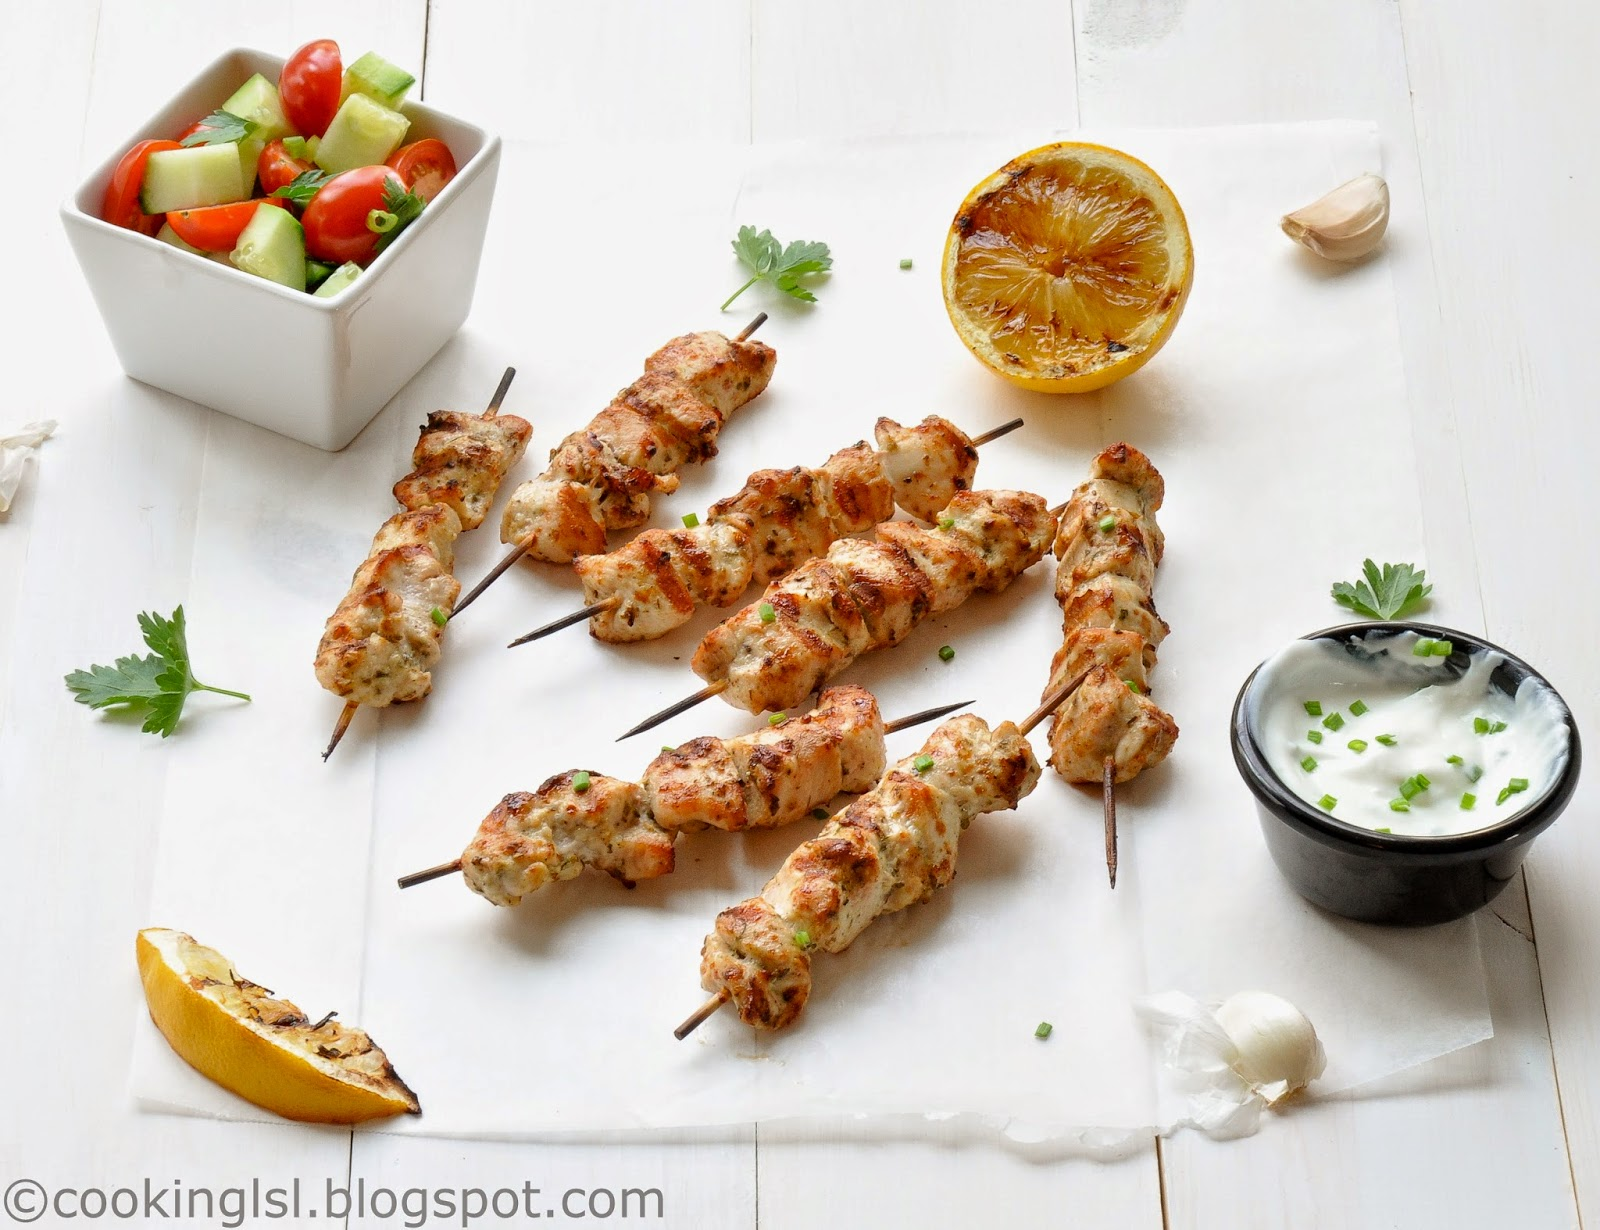 grilled marinated chicken skewers